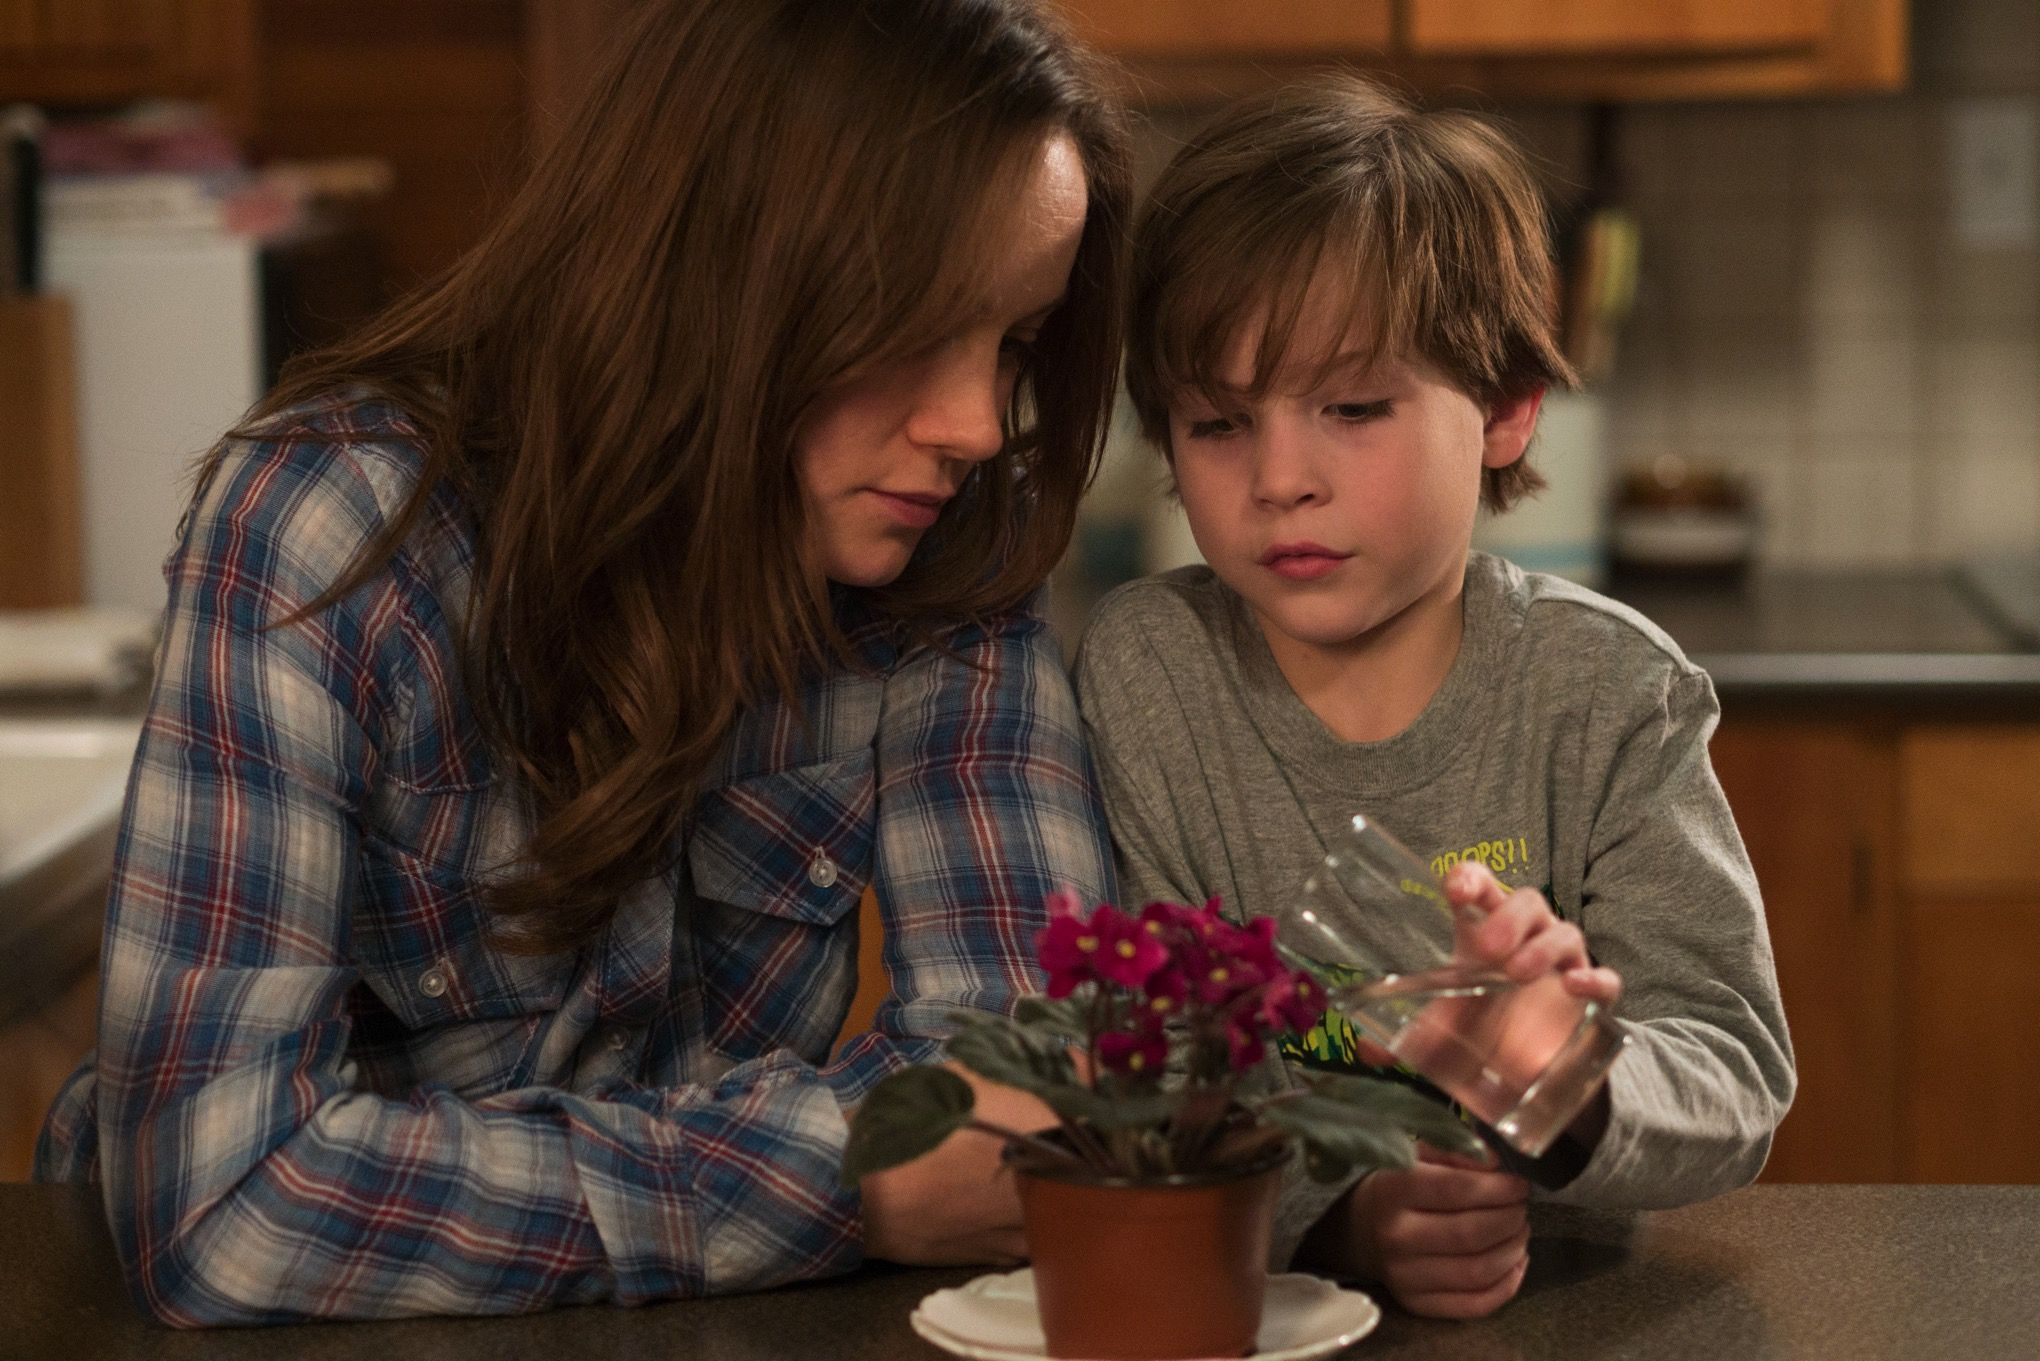 'Room' stars Brie Larson and Jacob Tremblay